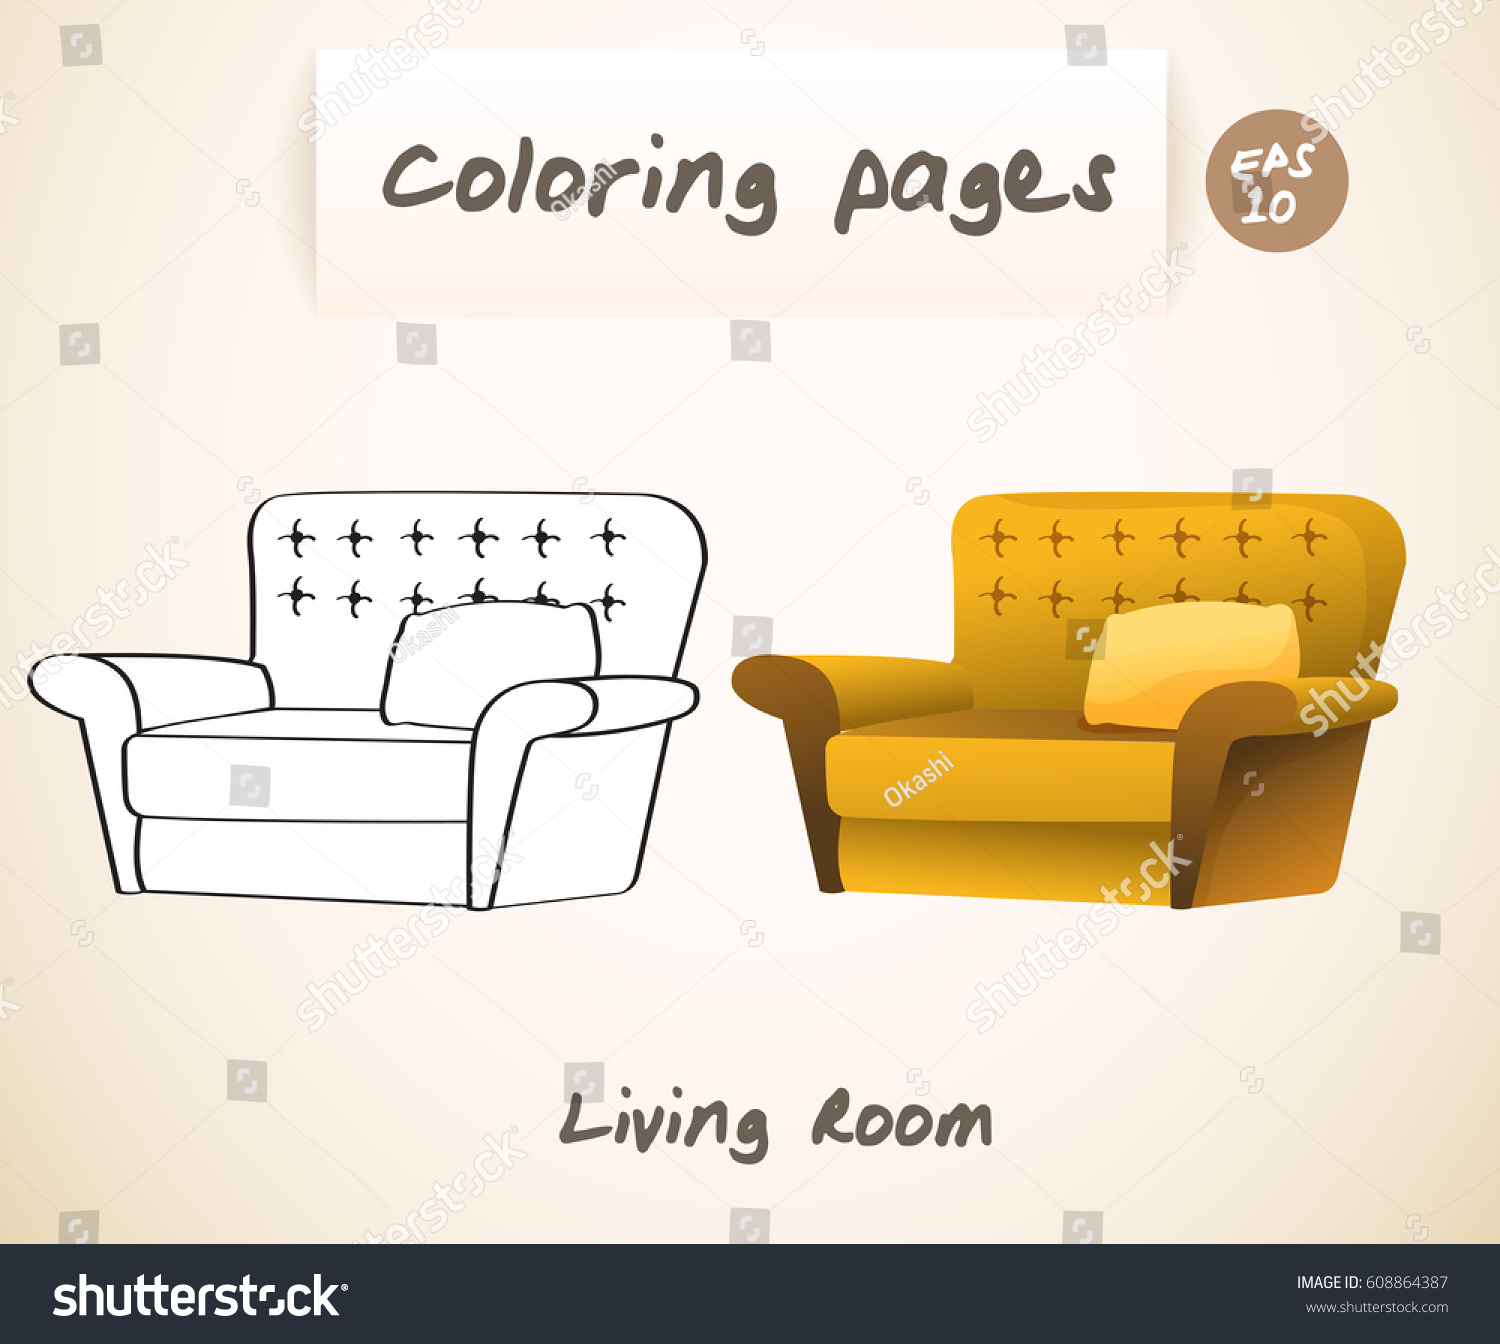 Living room coloring page - Coloring Book Pages For Kids Living Room Armchair Vector Illustration